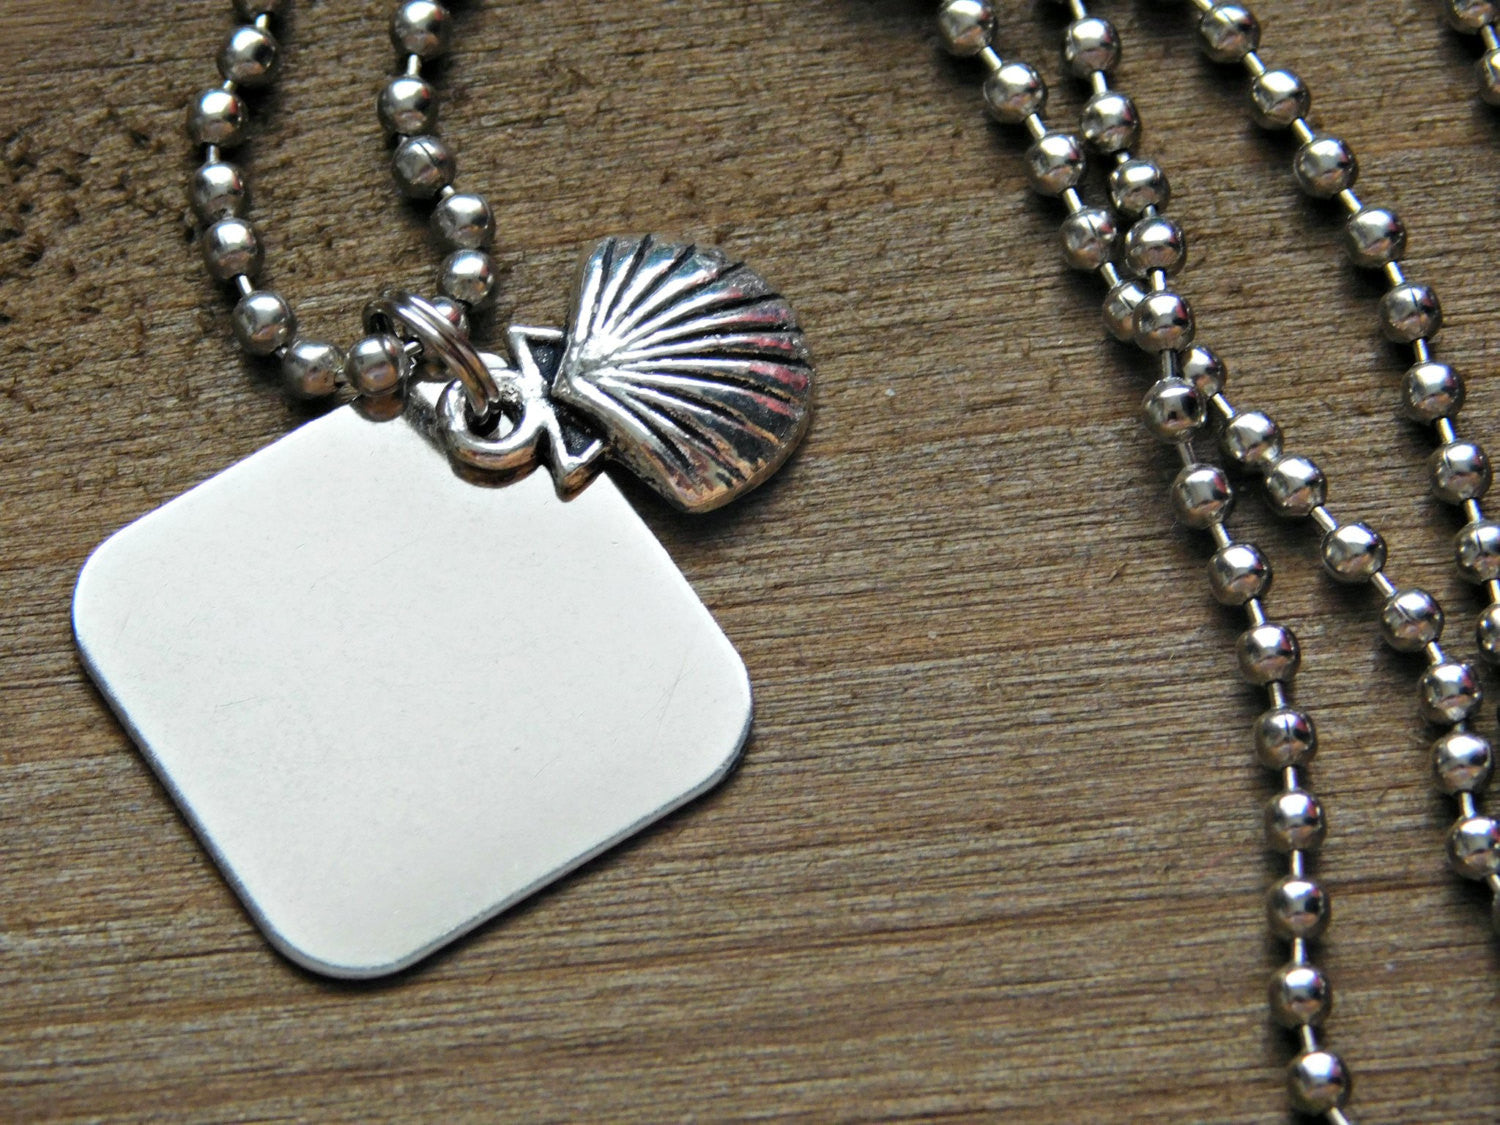 Summer Necklace Summer Charm Shell Necklace Beach Charm Seashell Necklace Clam Necklace Shell Charm Pendant Necklace Silver Long Necklace